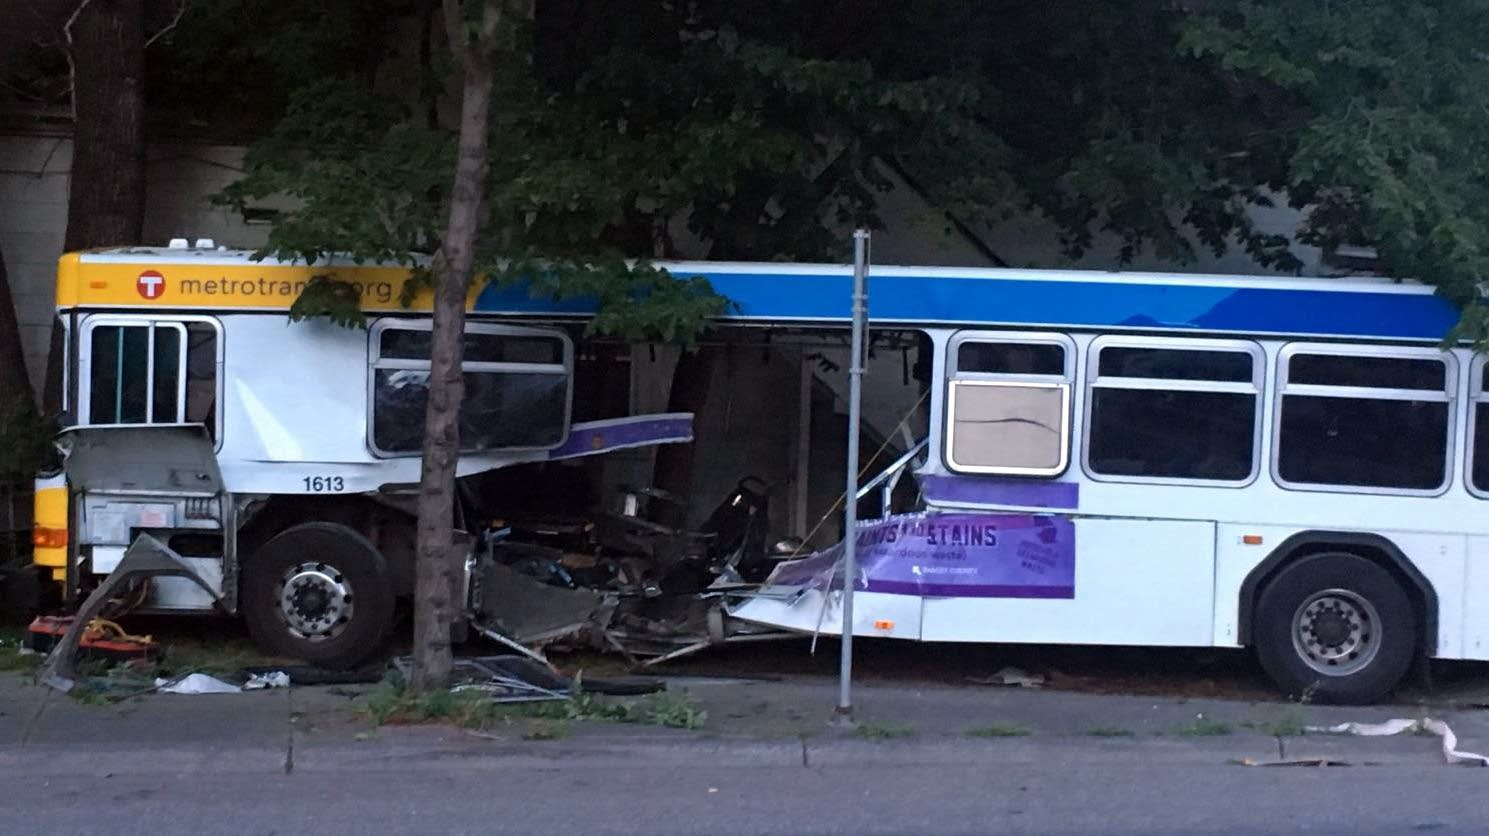 The Route 65 Metro Transit bus after a car ran through it.